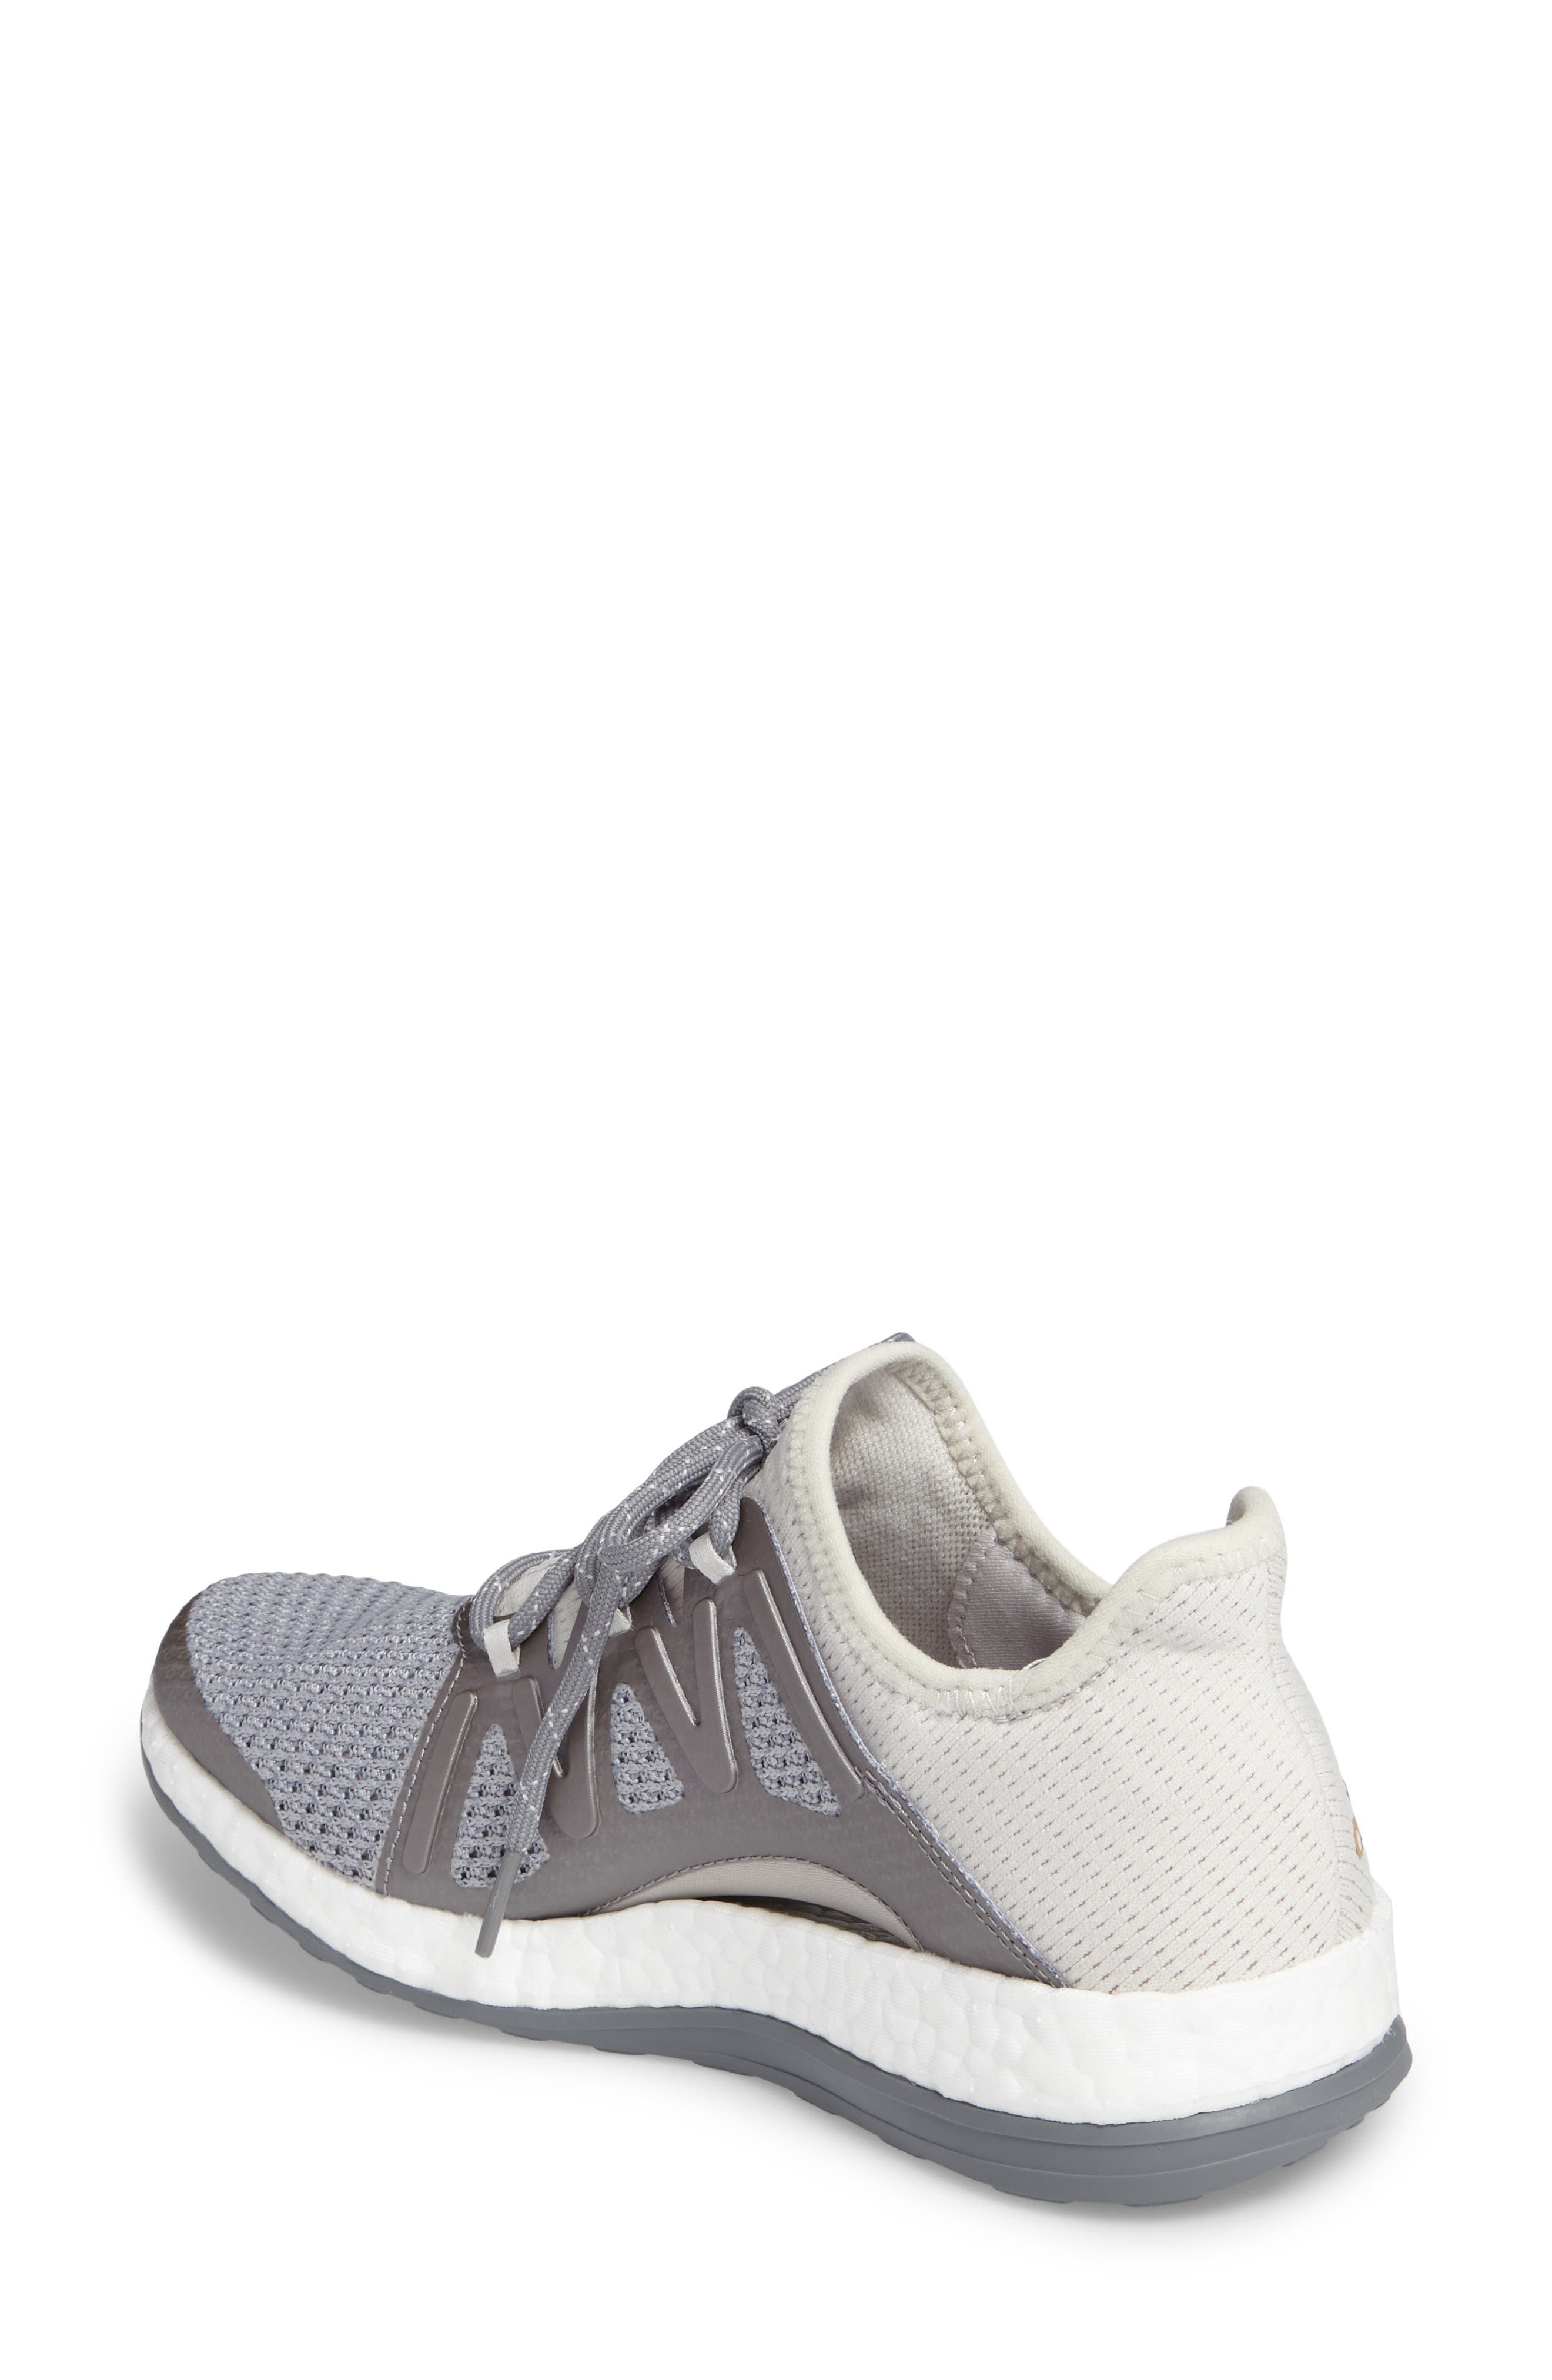 PureBOOST Xpose Running Shoe,                             Alternate thumbnail 7, color,